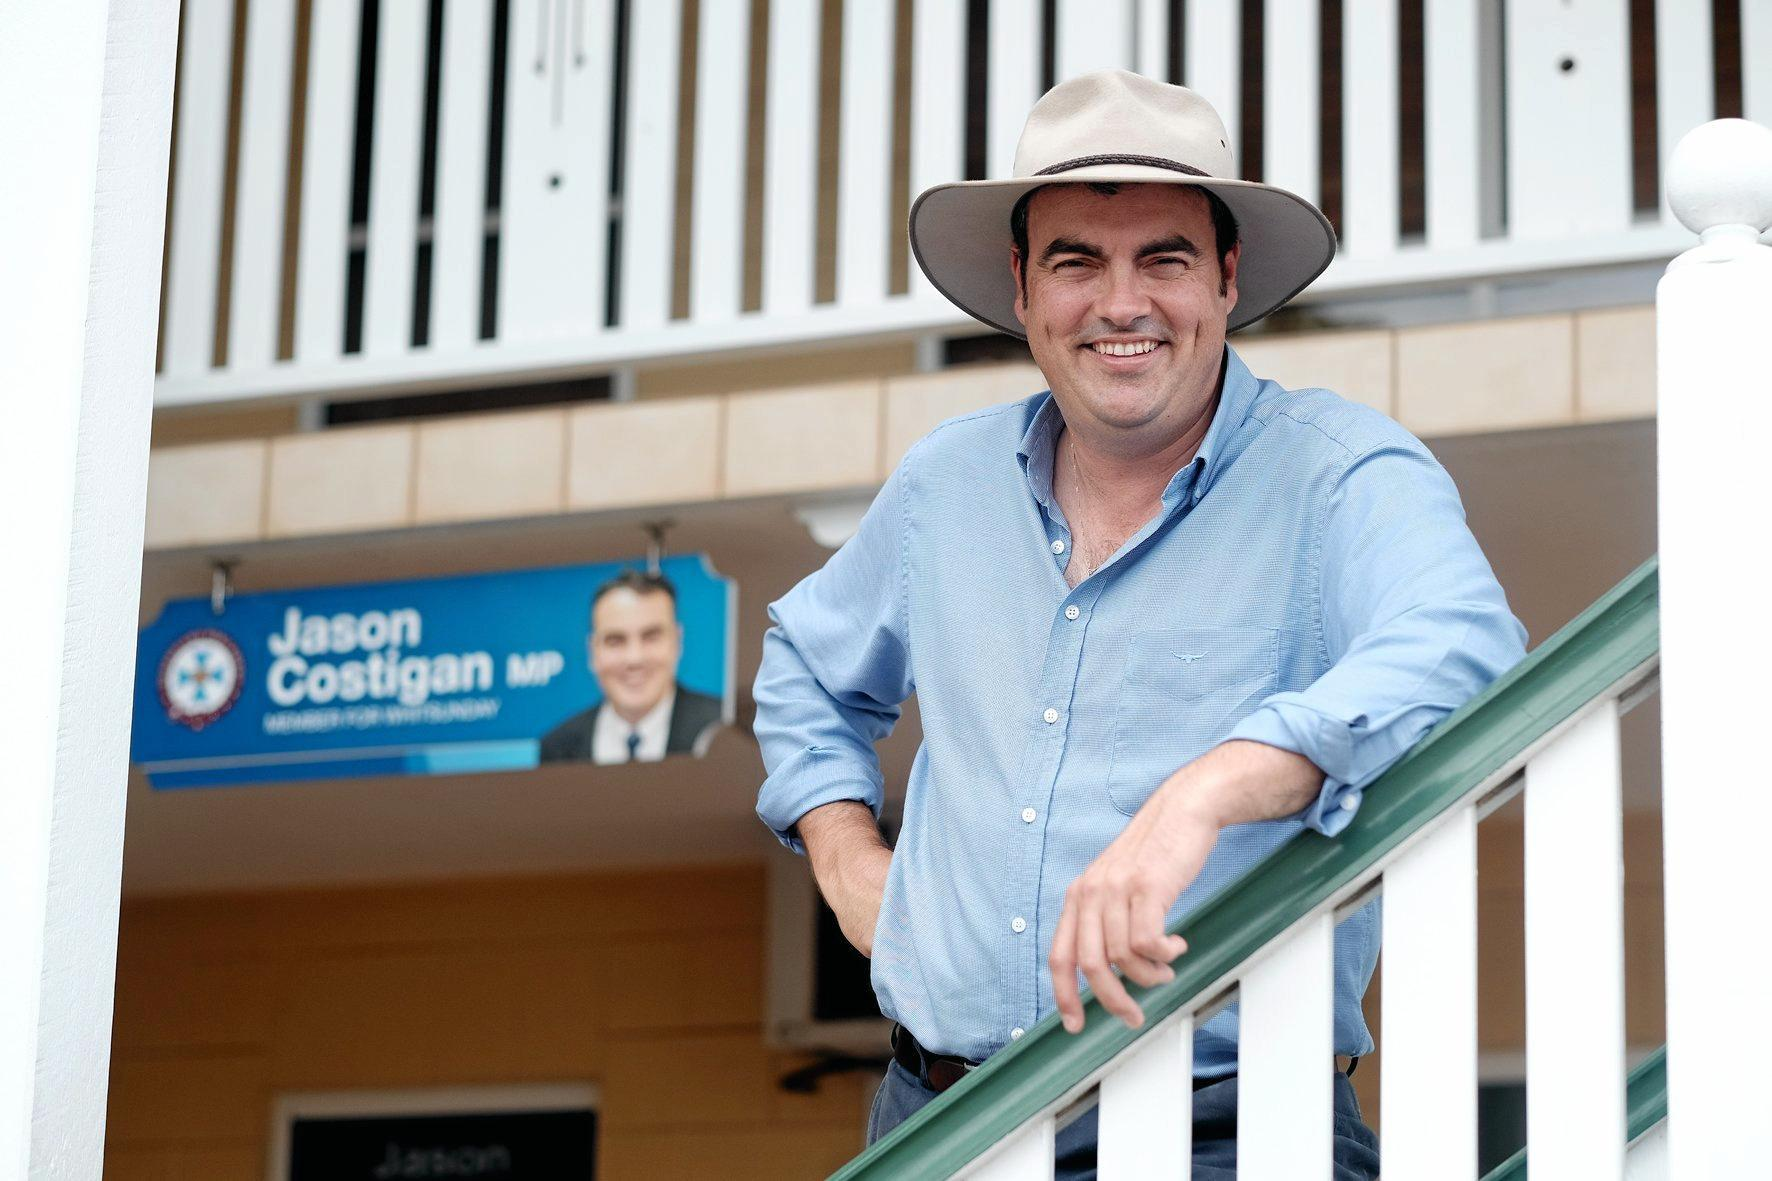 Whitsunday MP Jason Costigan did not appear happy at the spread of Adani projects.